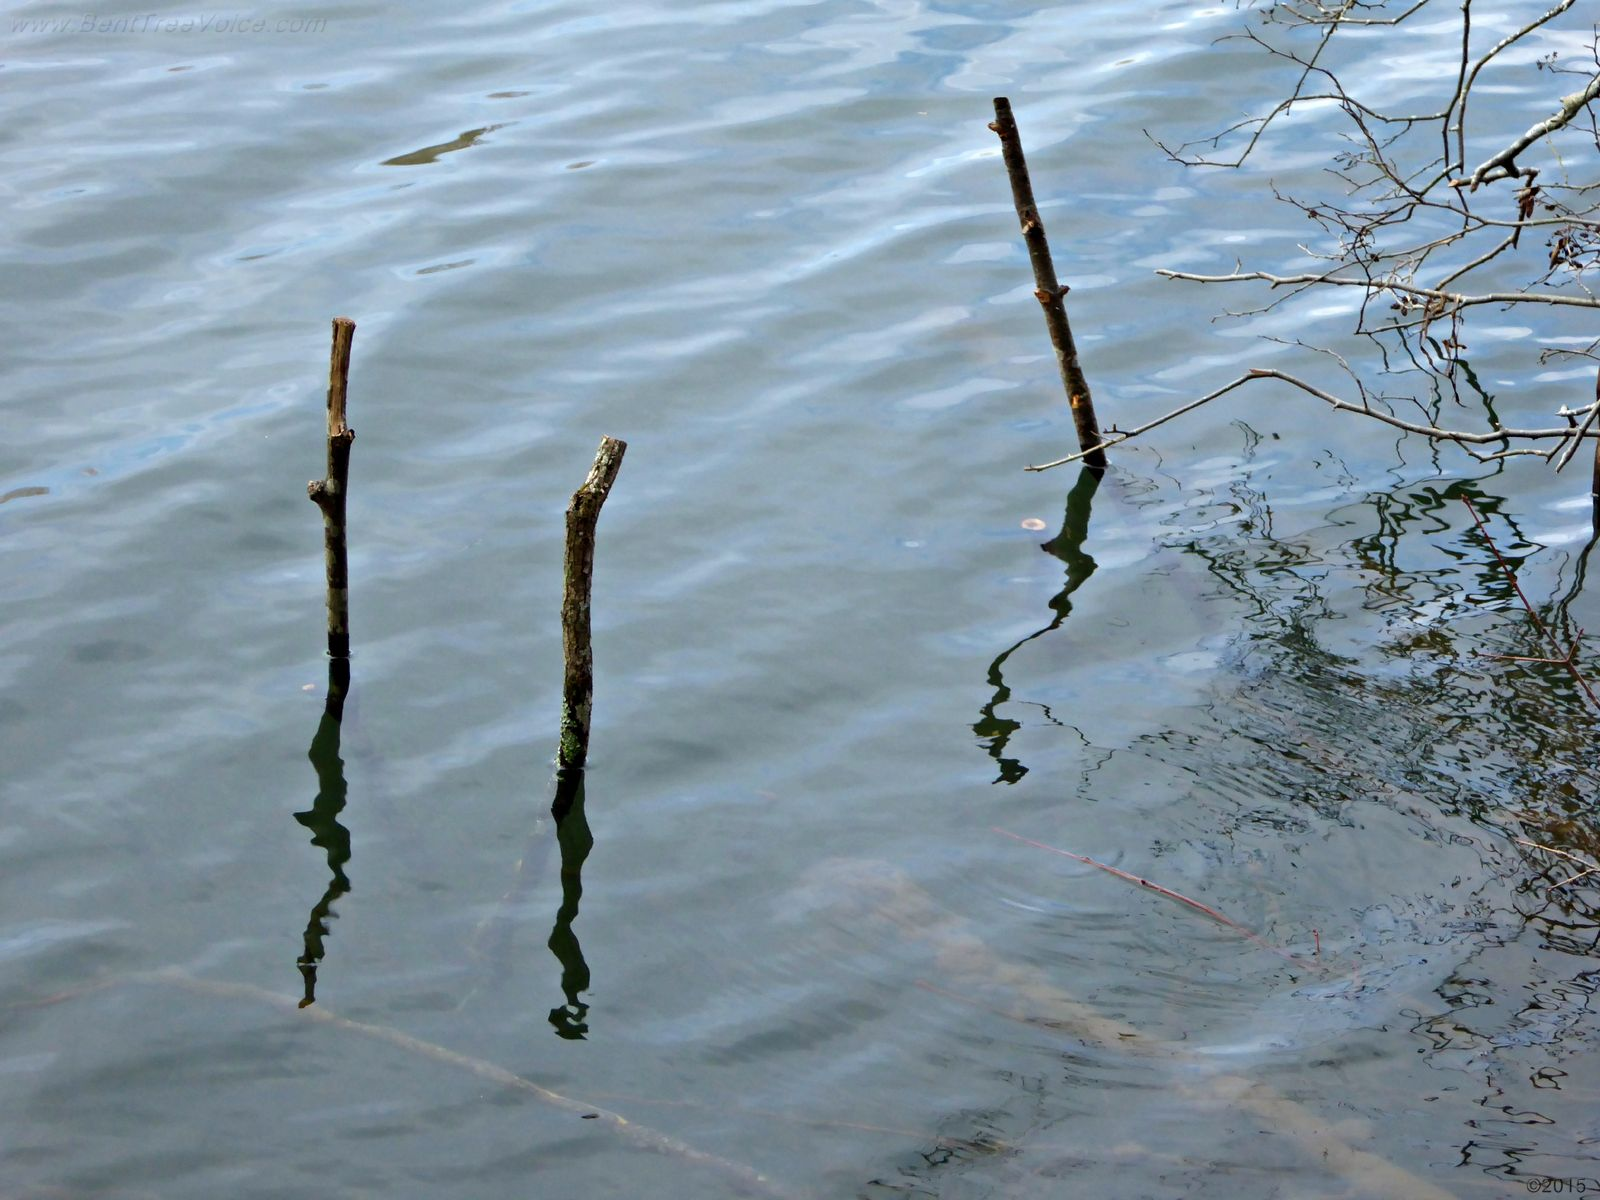 February 14, 2015 - closeup of sticks used with the trap